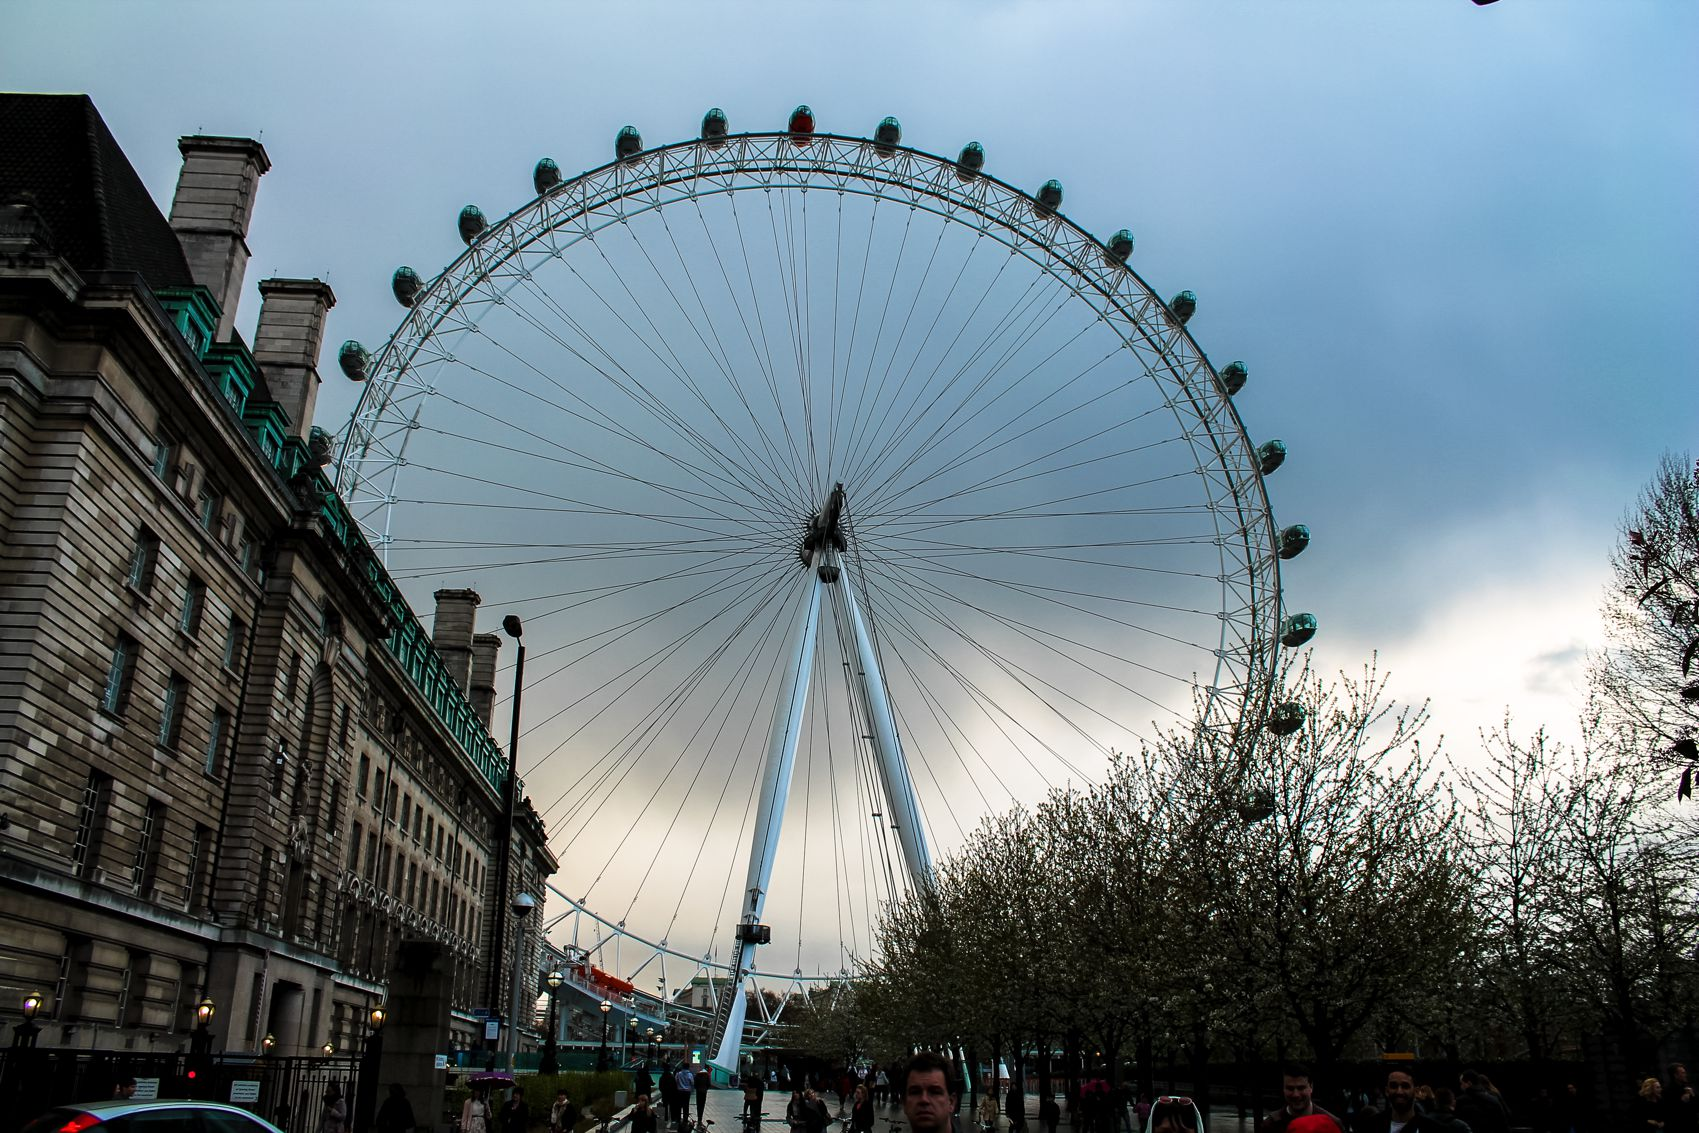 The View of London from The London Eye and a Walk Around London (1)